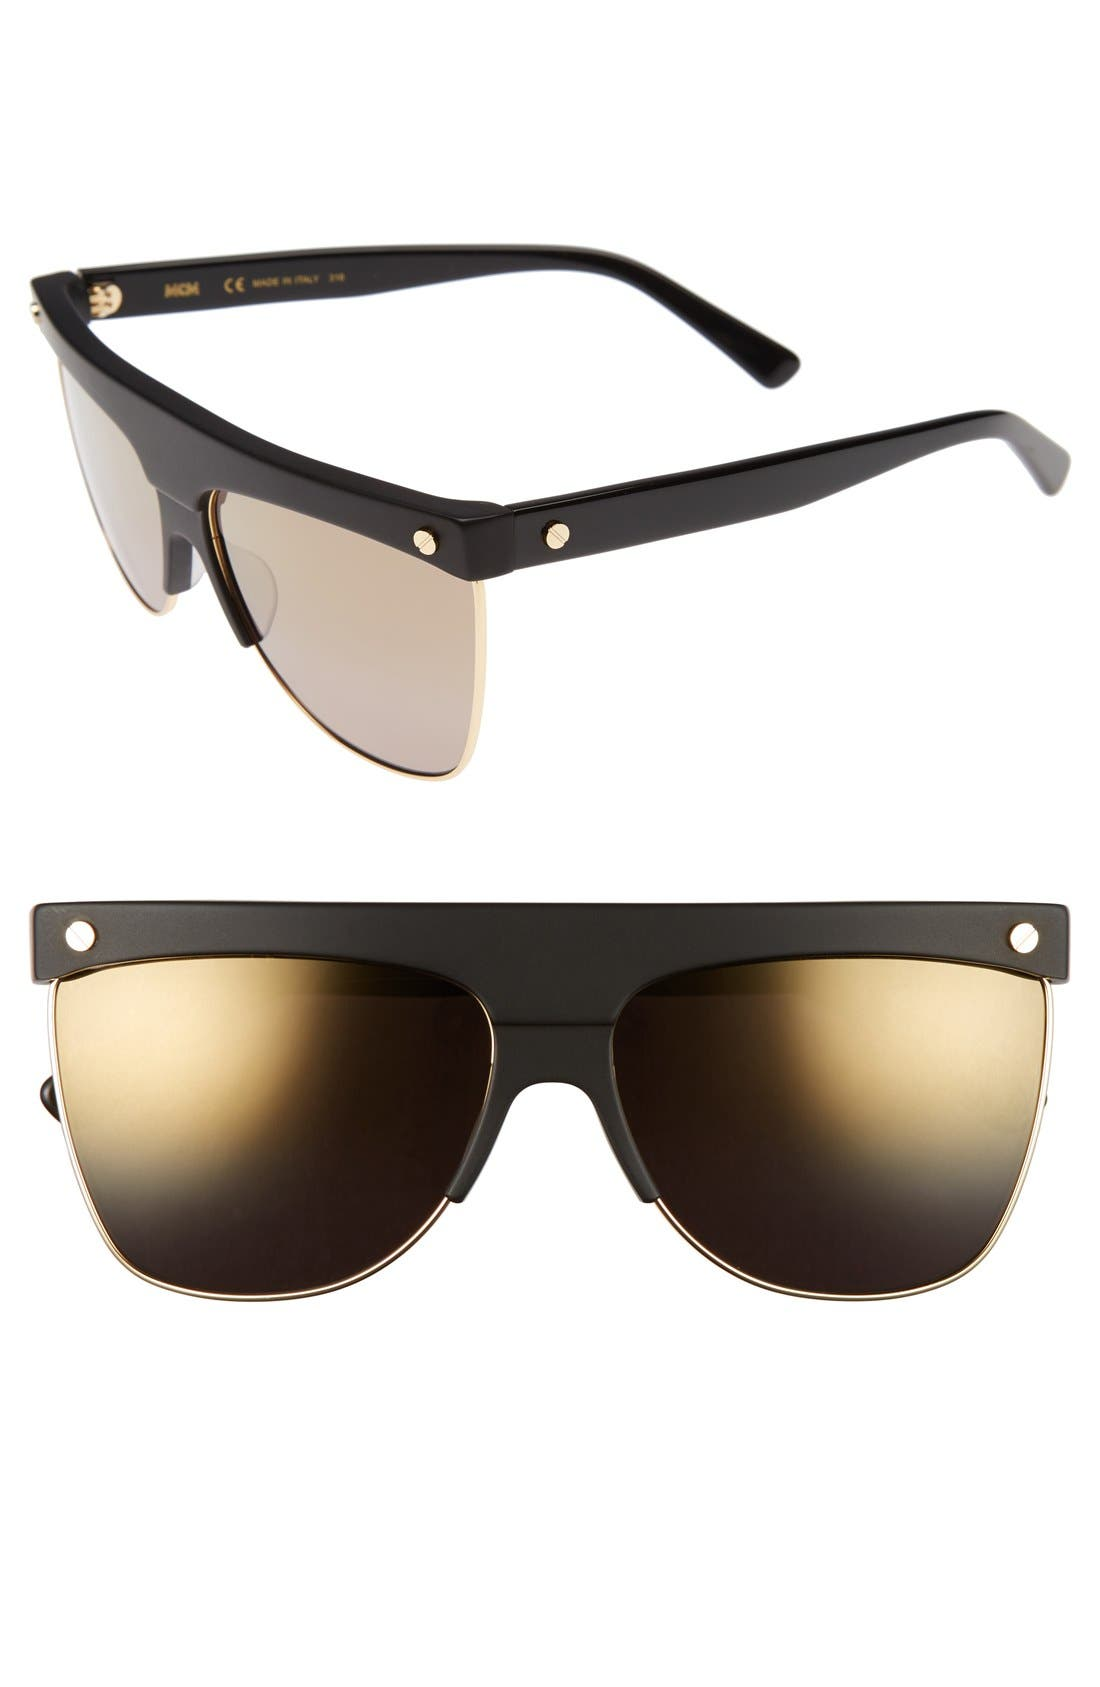 60mm Aviator Sunglasses,                         Main,                         color, 001